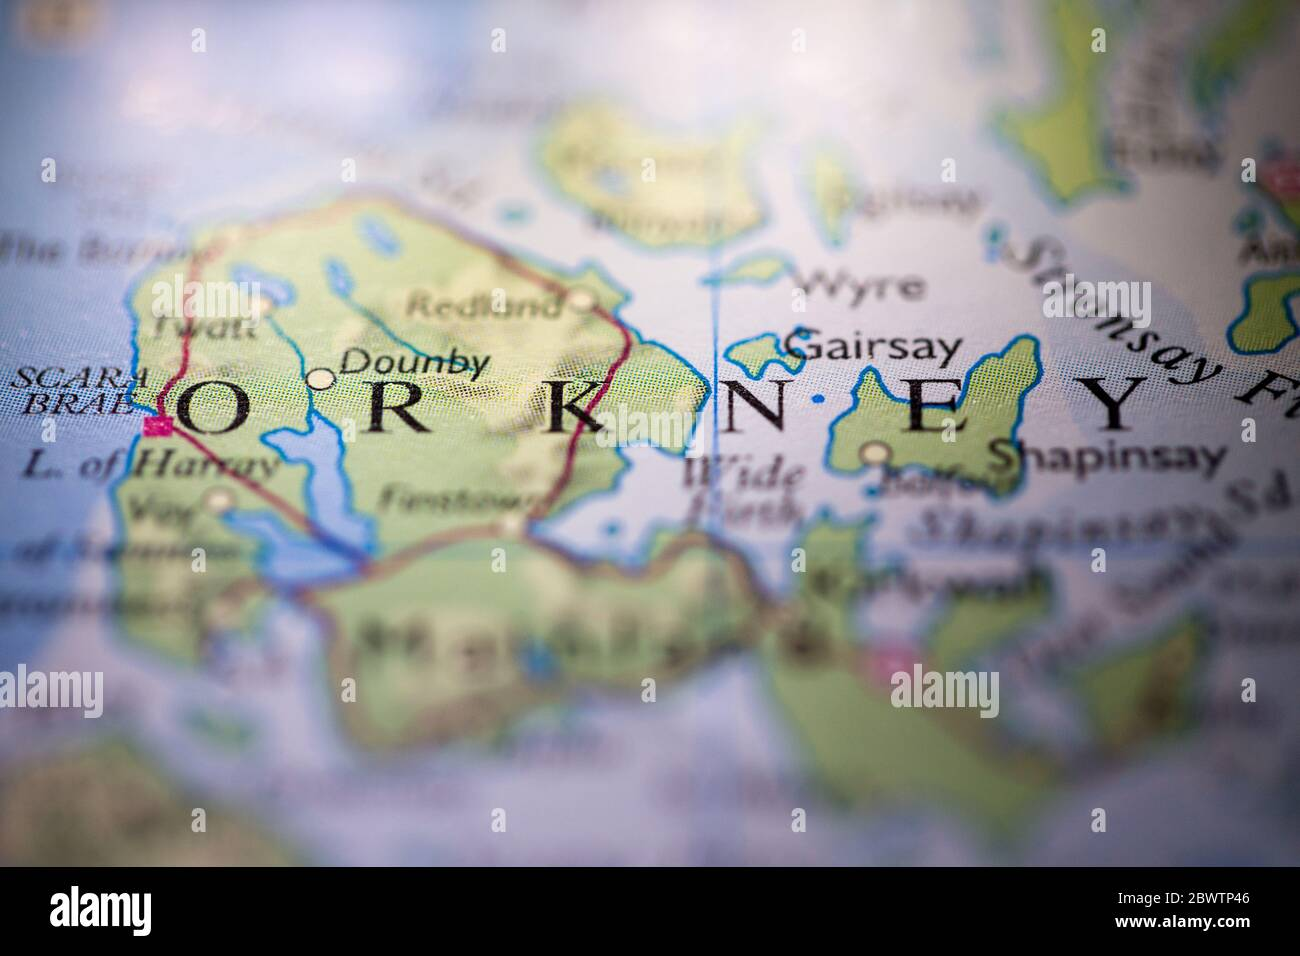 Picture of: Shallow Depth Of Field Focus On Geographical Map Location Of Orkney Scotland United Kingdom Great Britain Europe Continent On Atlas Stock Photo Alamy